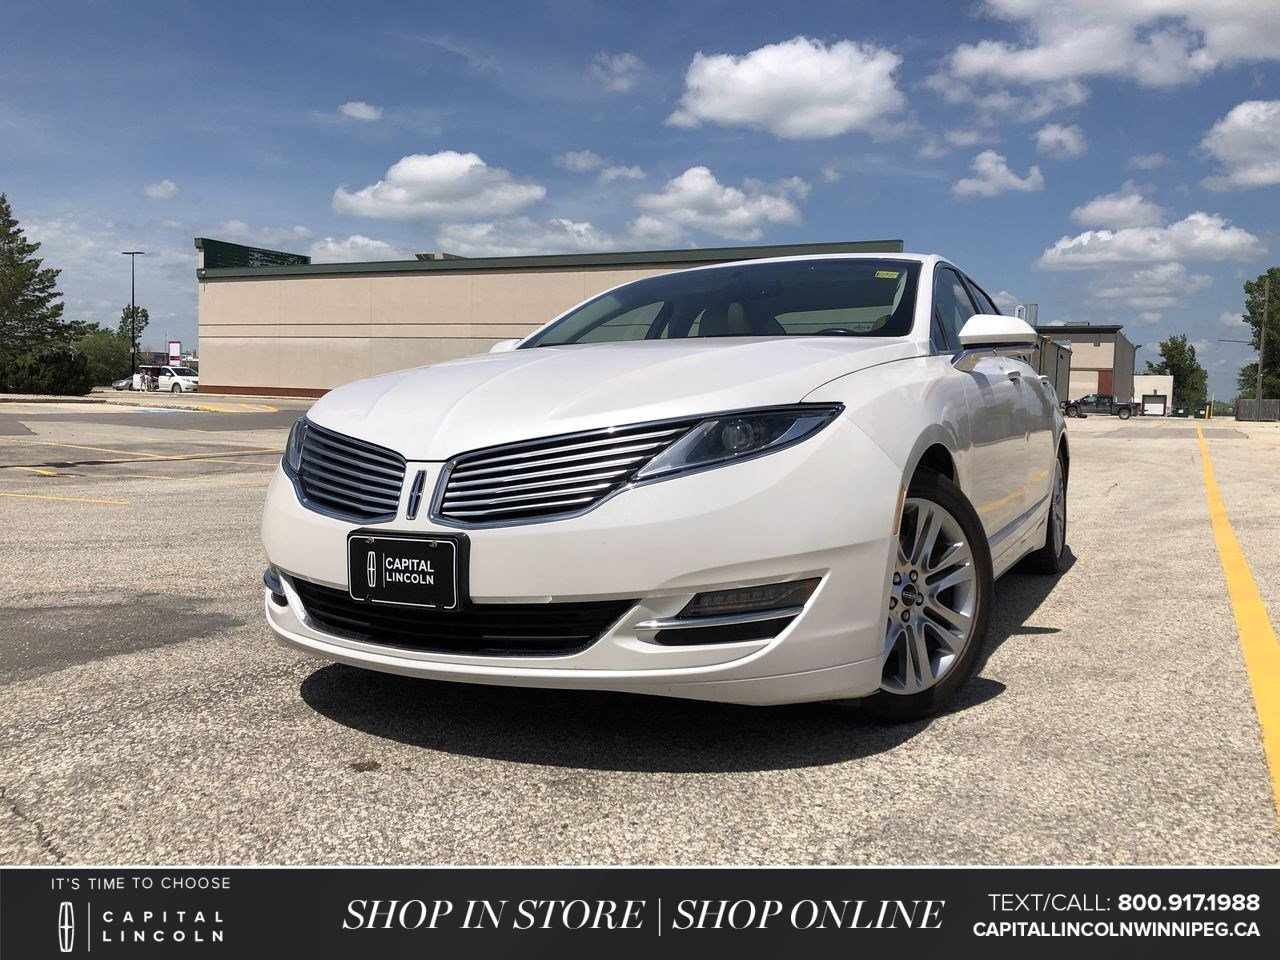 Pre-Owned 2015 Lincoln MKZ 4DR SDN FWD *LED Headlights *Navigation *Leather Seats